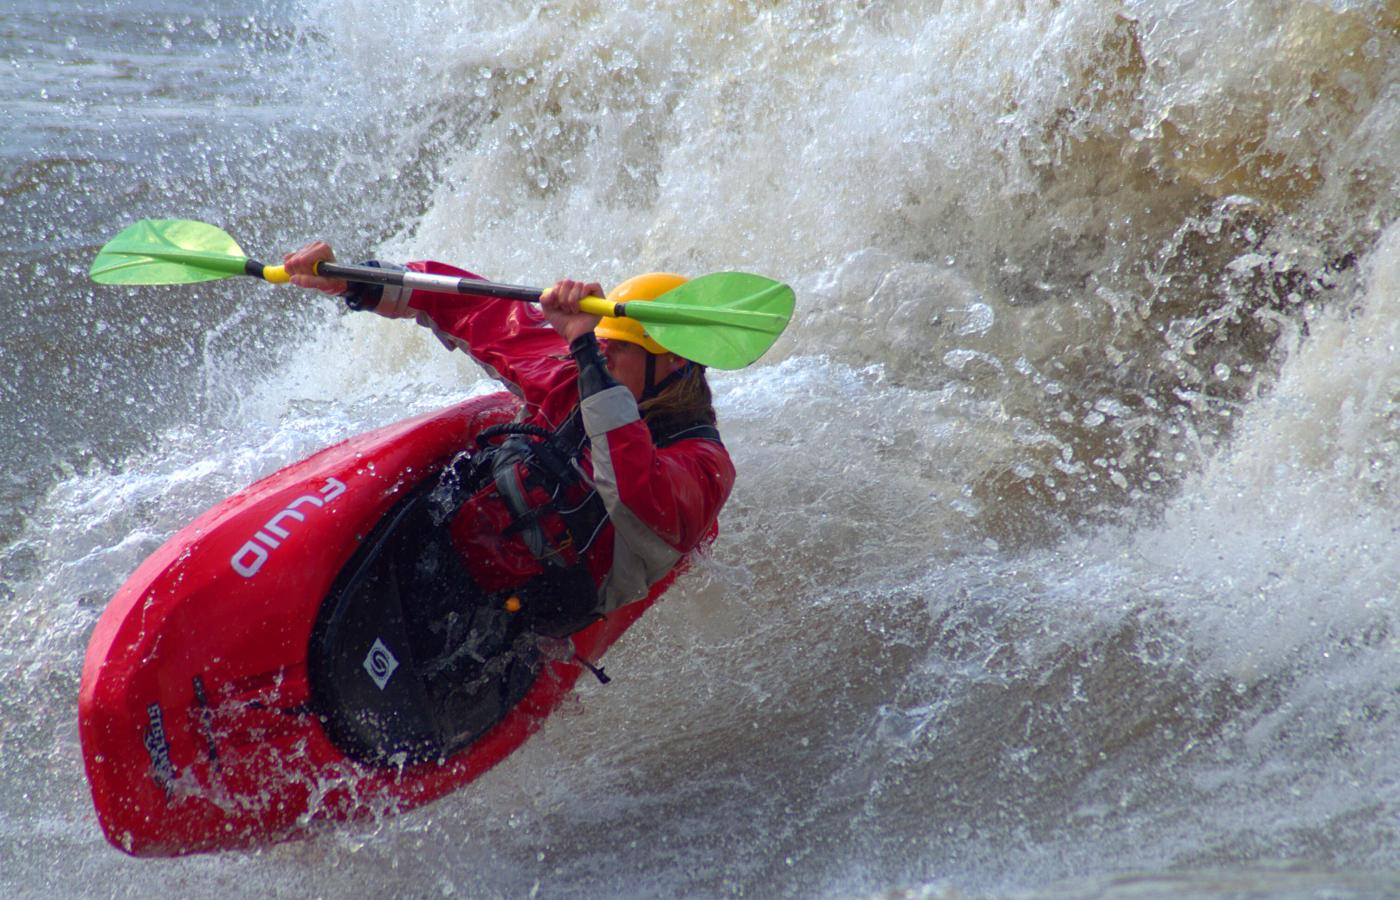 World-class kayakers compete at Paddlefest in Fort Smith.